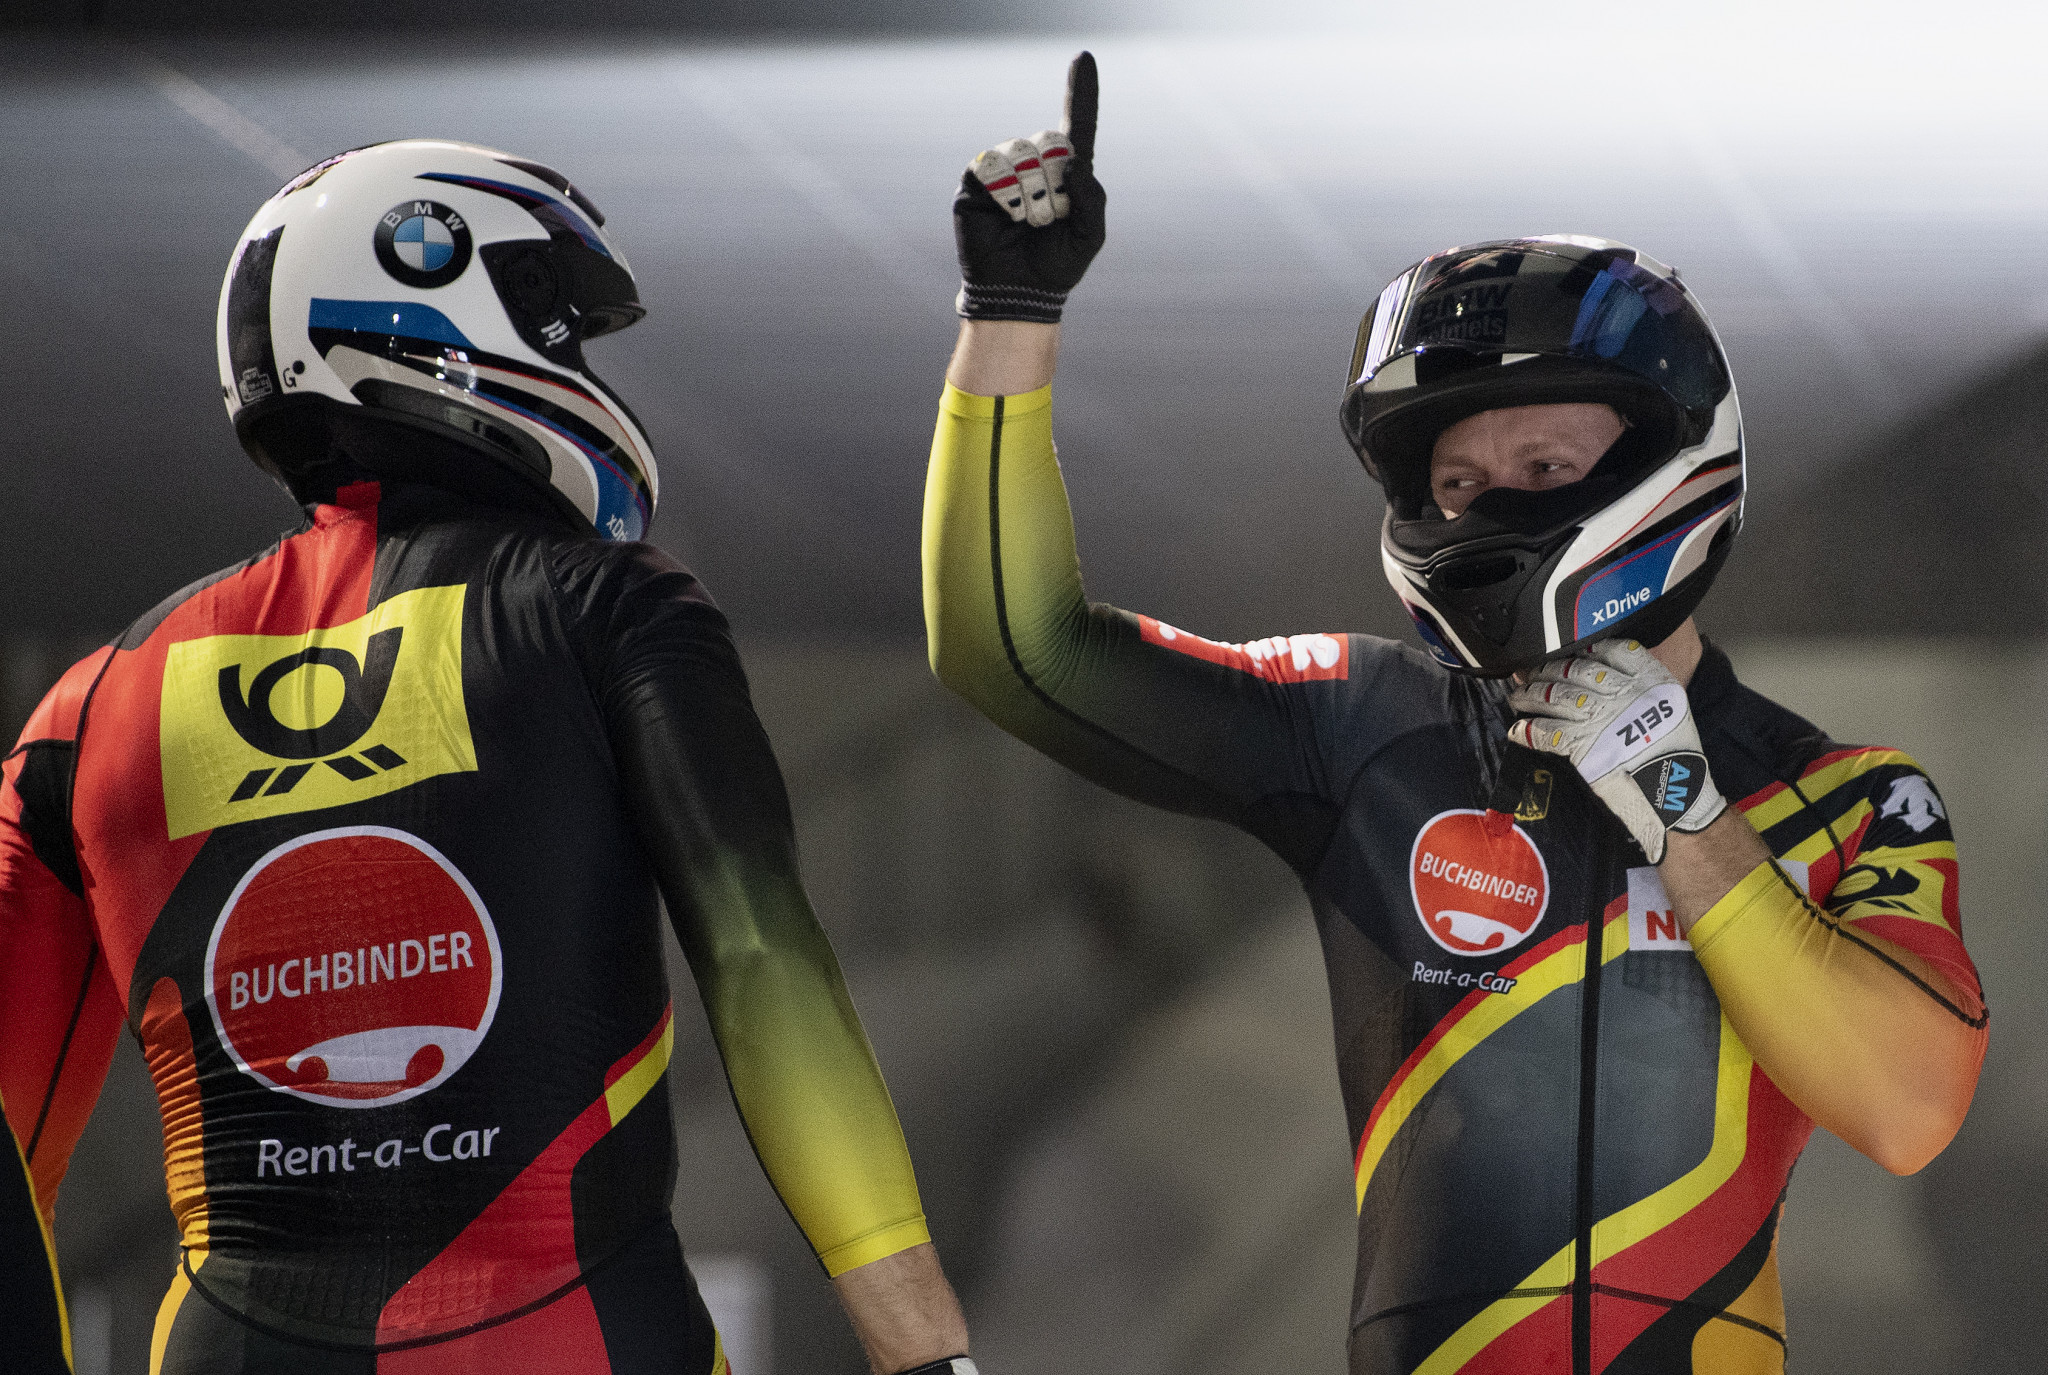 Germany's Francesco Friedrich is leading the two-man and four-man bobsleigh standings going into the IBSF World Cup event in Lake Placid ©Getty Images